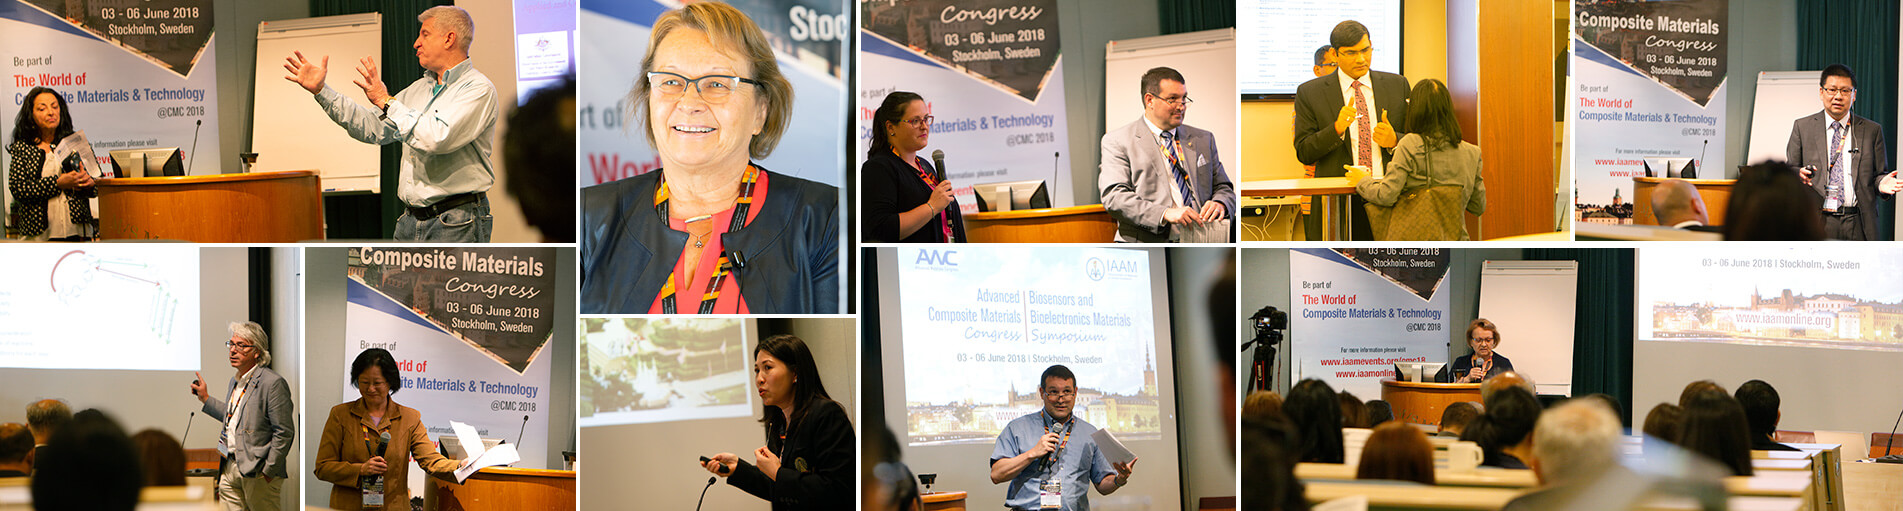 Lecturers during composite materials congress event | IAAM